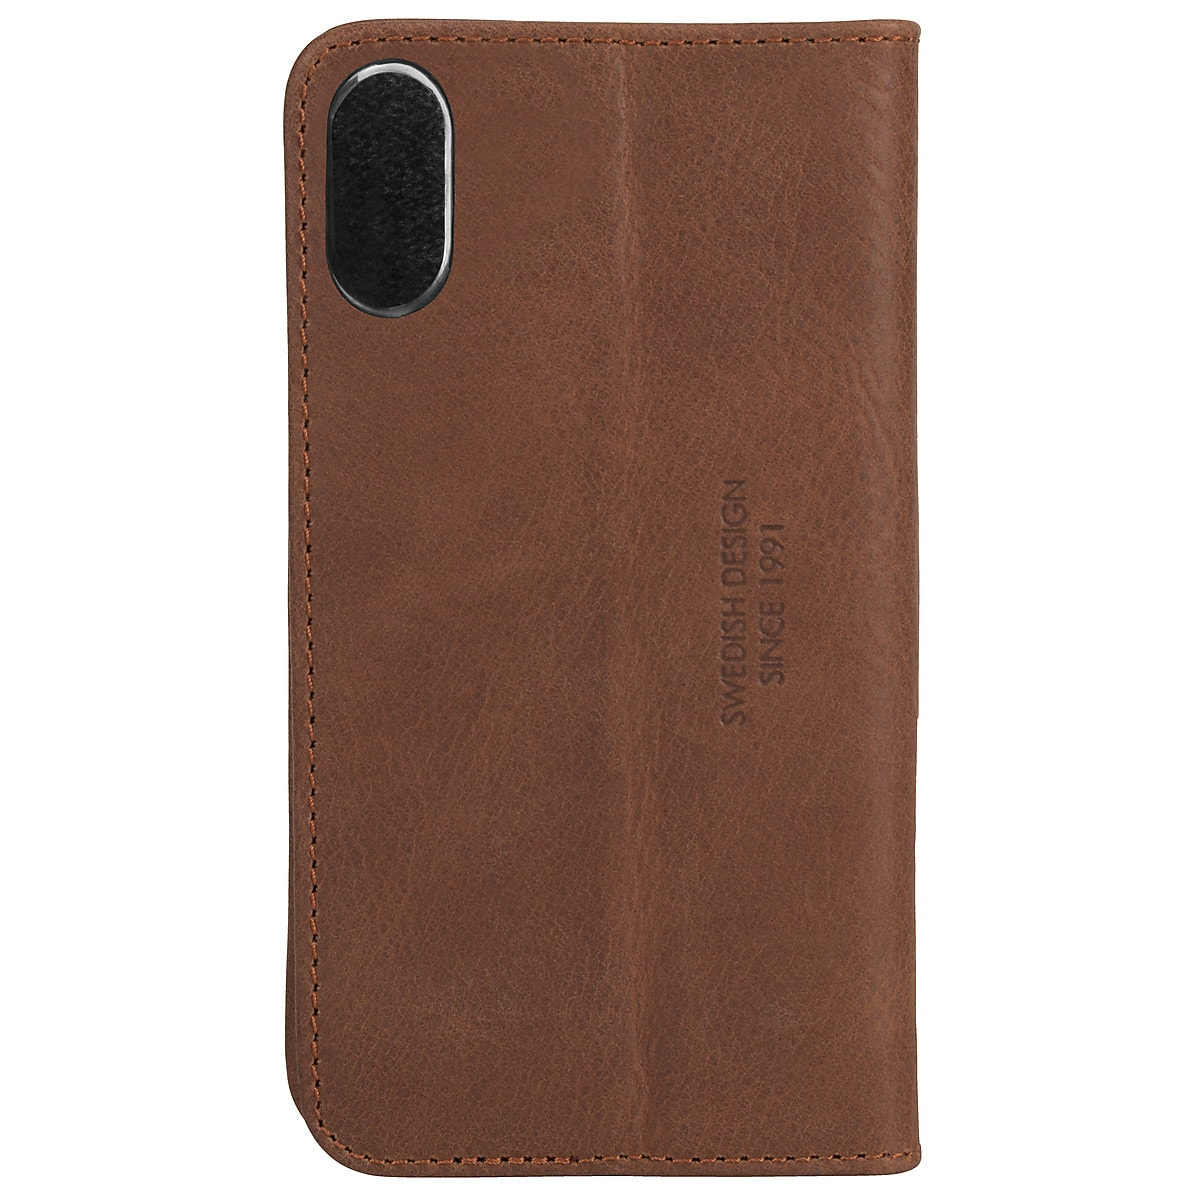 Krusell Sunne FolioCase Wallet Case for iPhone X/XS